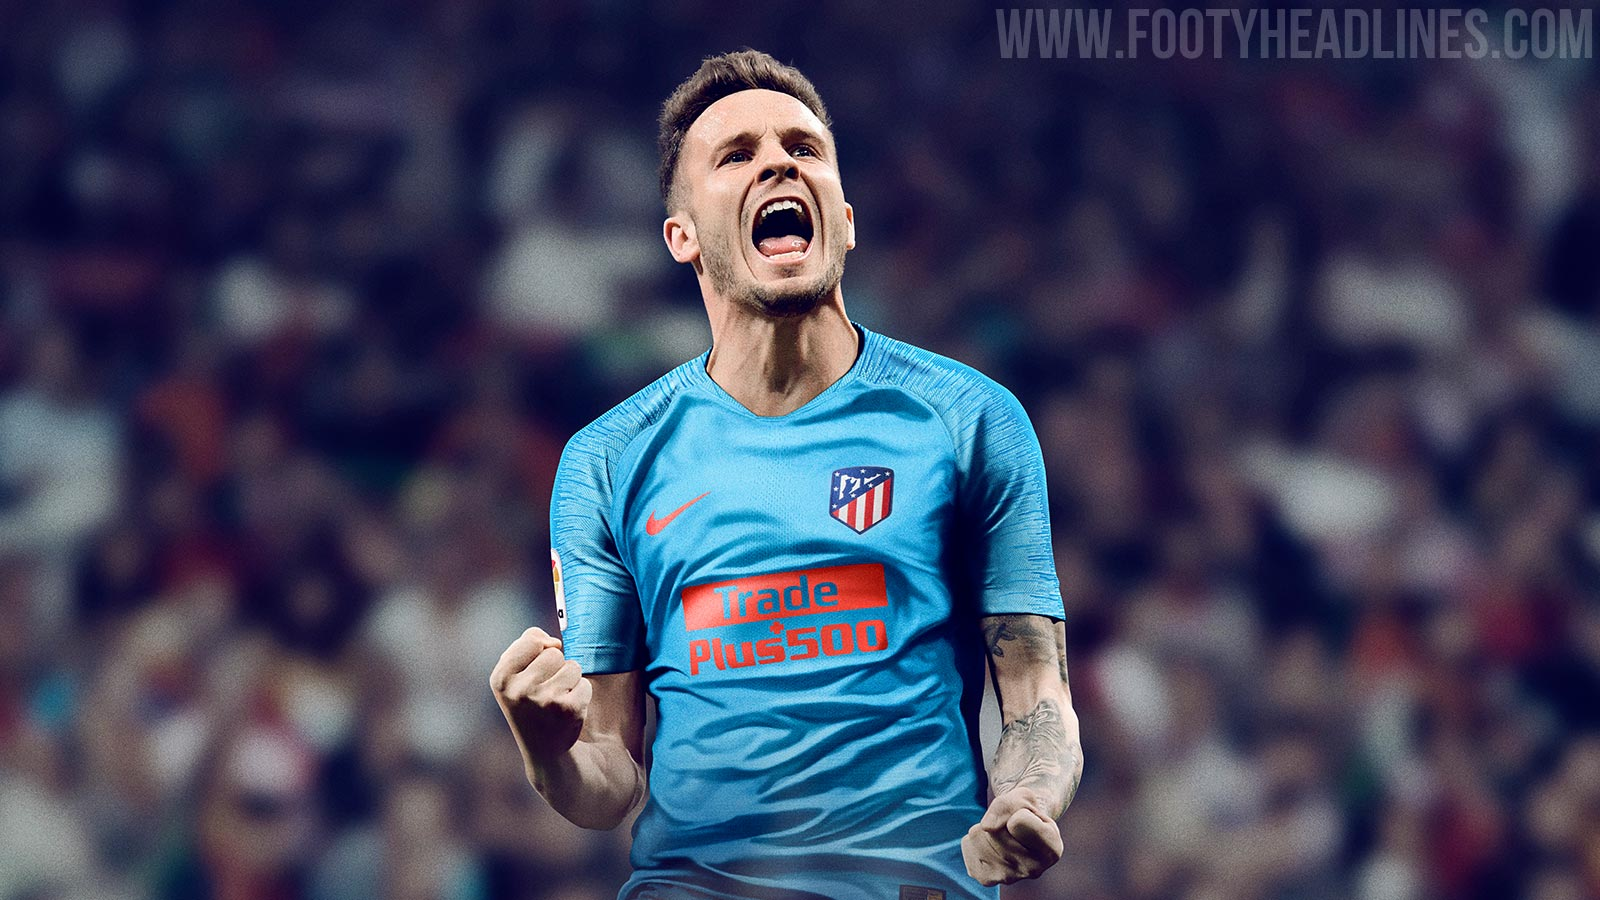 Nike Atltico Madrid 18 19 Away Kit Released Footy Headlines Jersey Atletico Home 2017 2018 Madrids Features A Fresh Look In Bright Blue And Red The New 2019 Was Launched On July